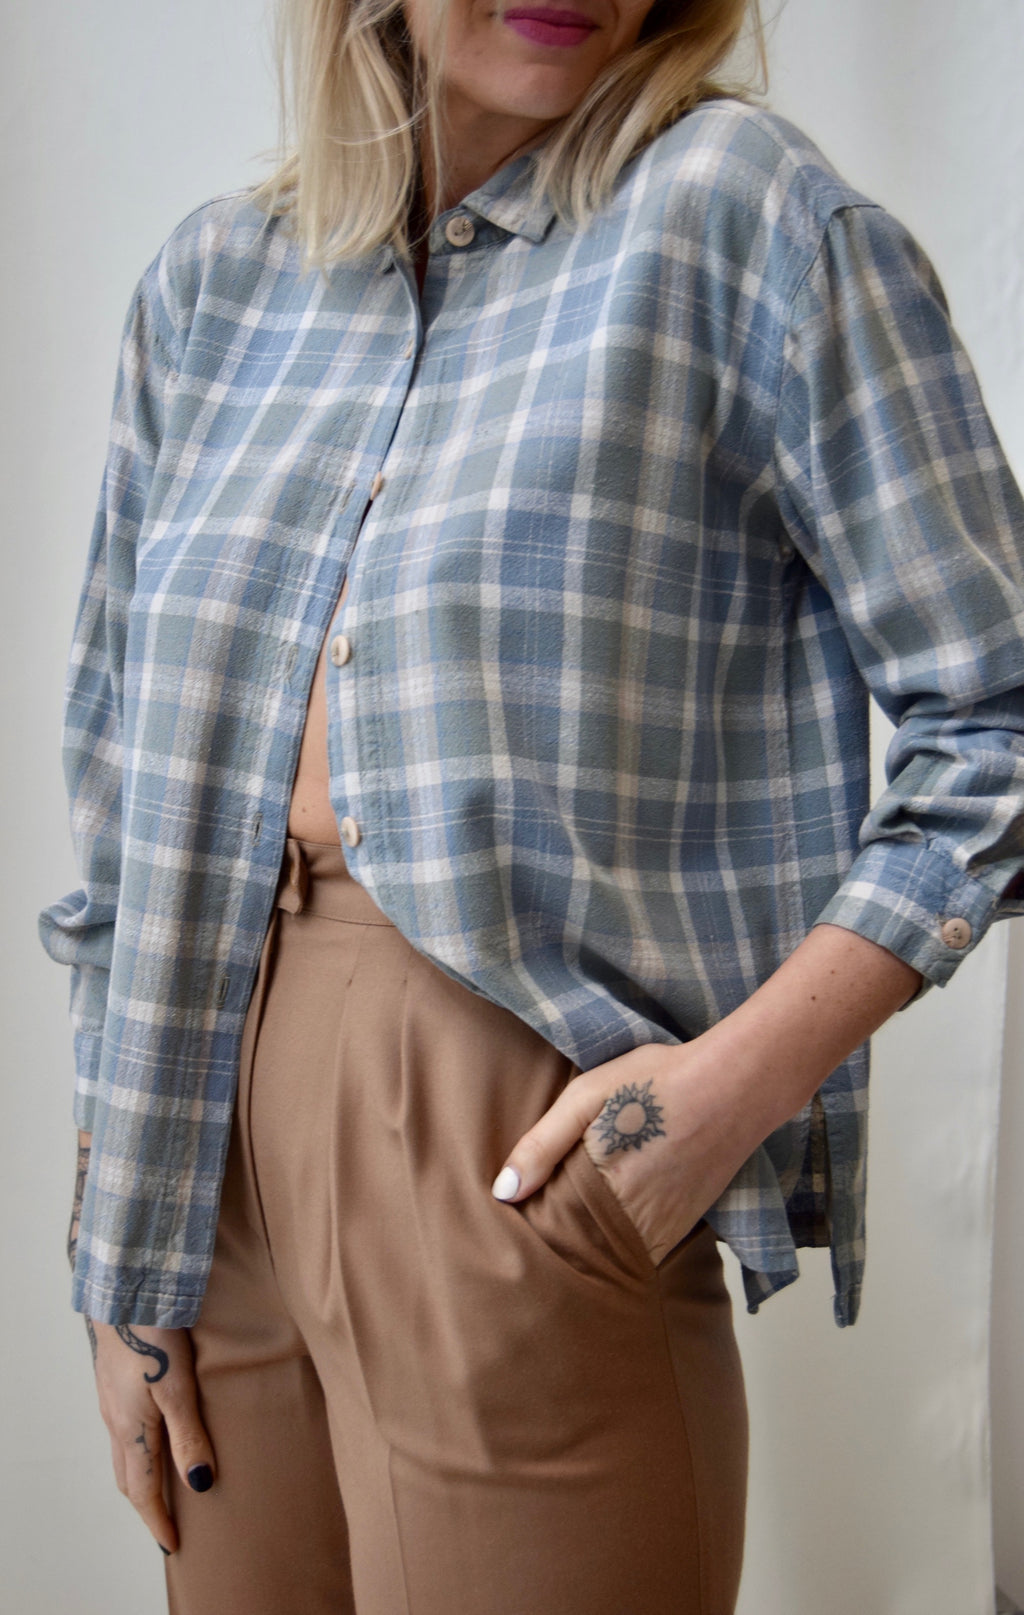 Raw Silk Pastel Plaid Long Sleeve Button Up FREE SHIPPING TO THE U.S.